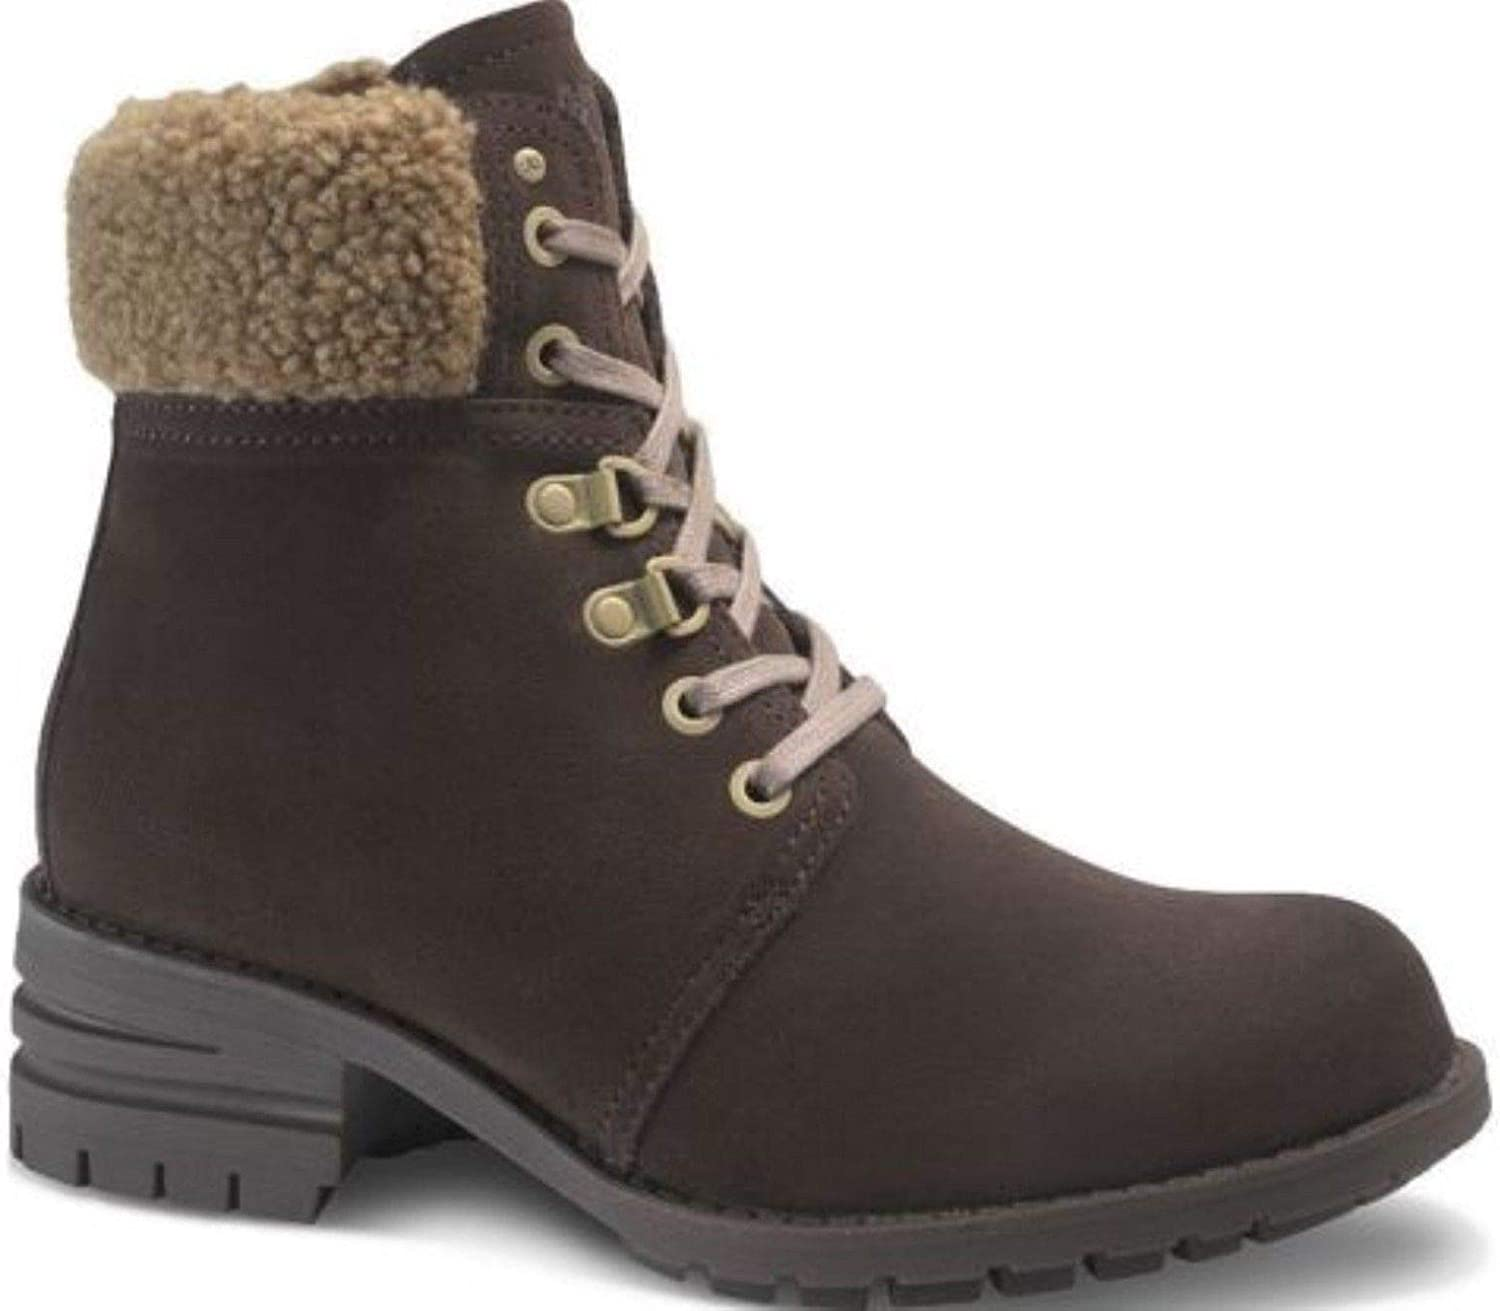 Caterpillar Cora Fur Bottines rembourrées en Fausse Fourrure